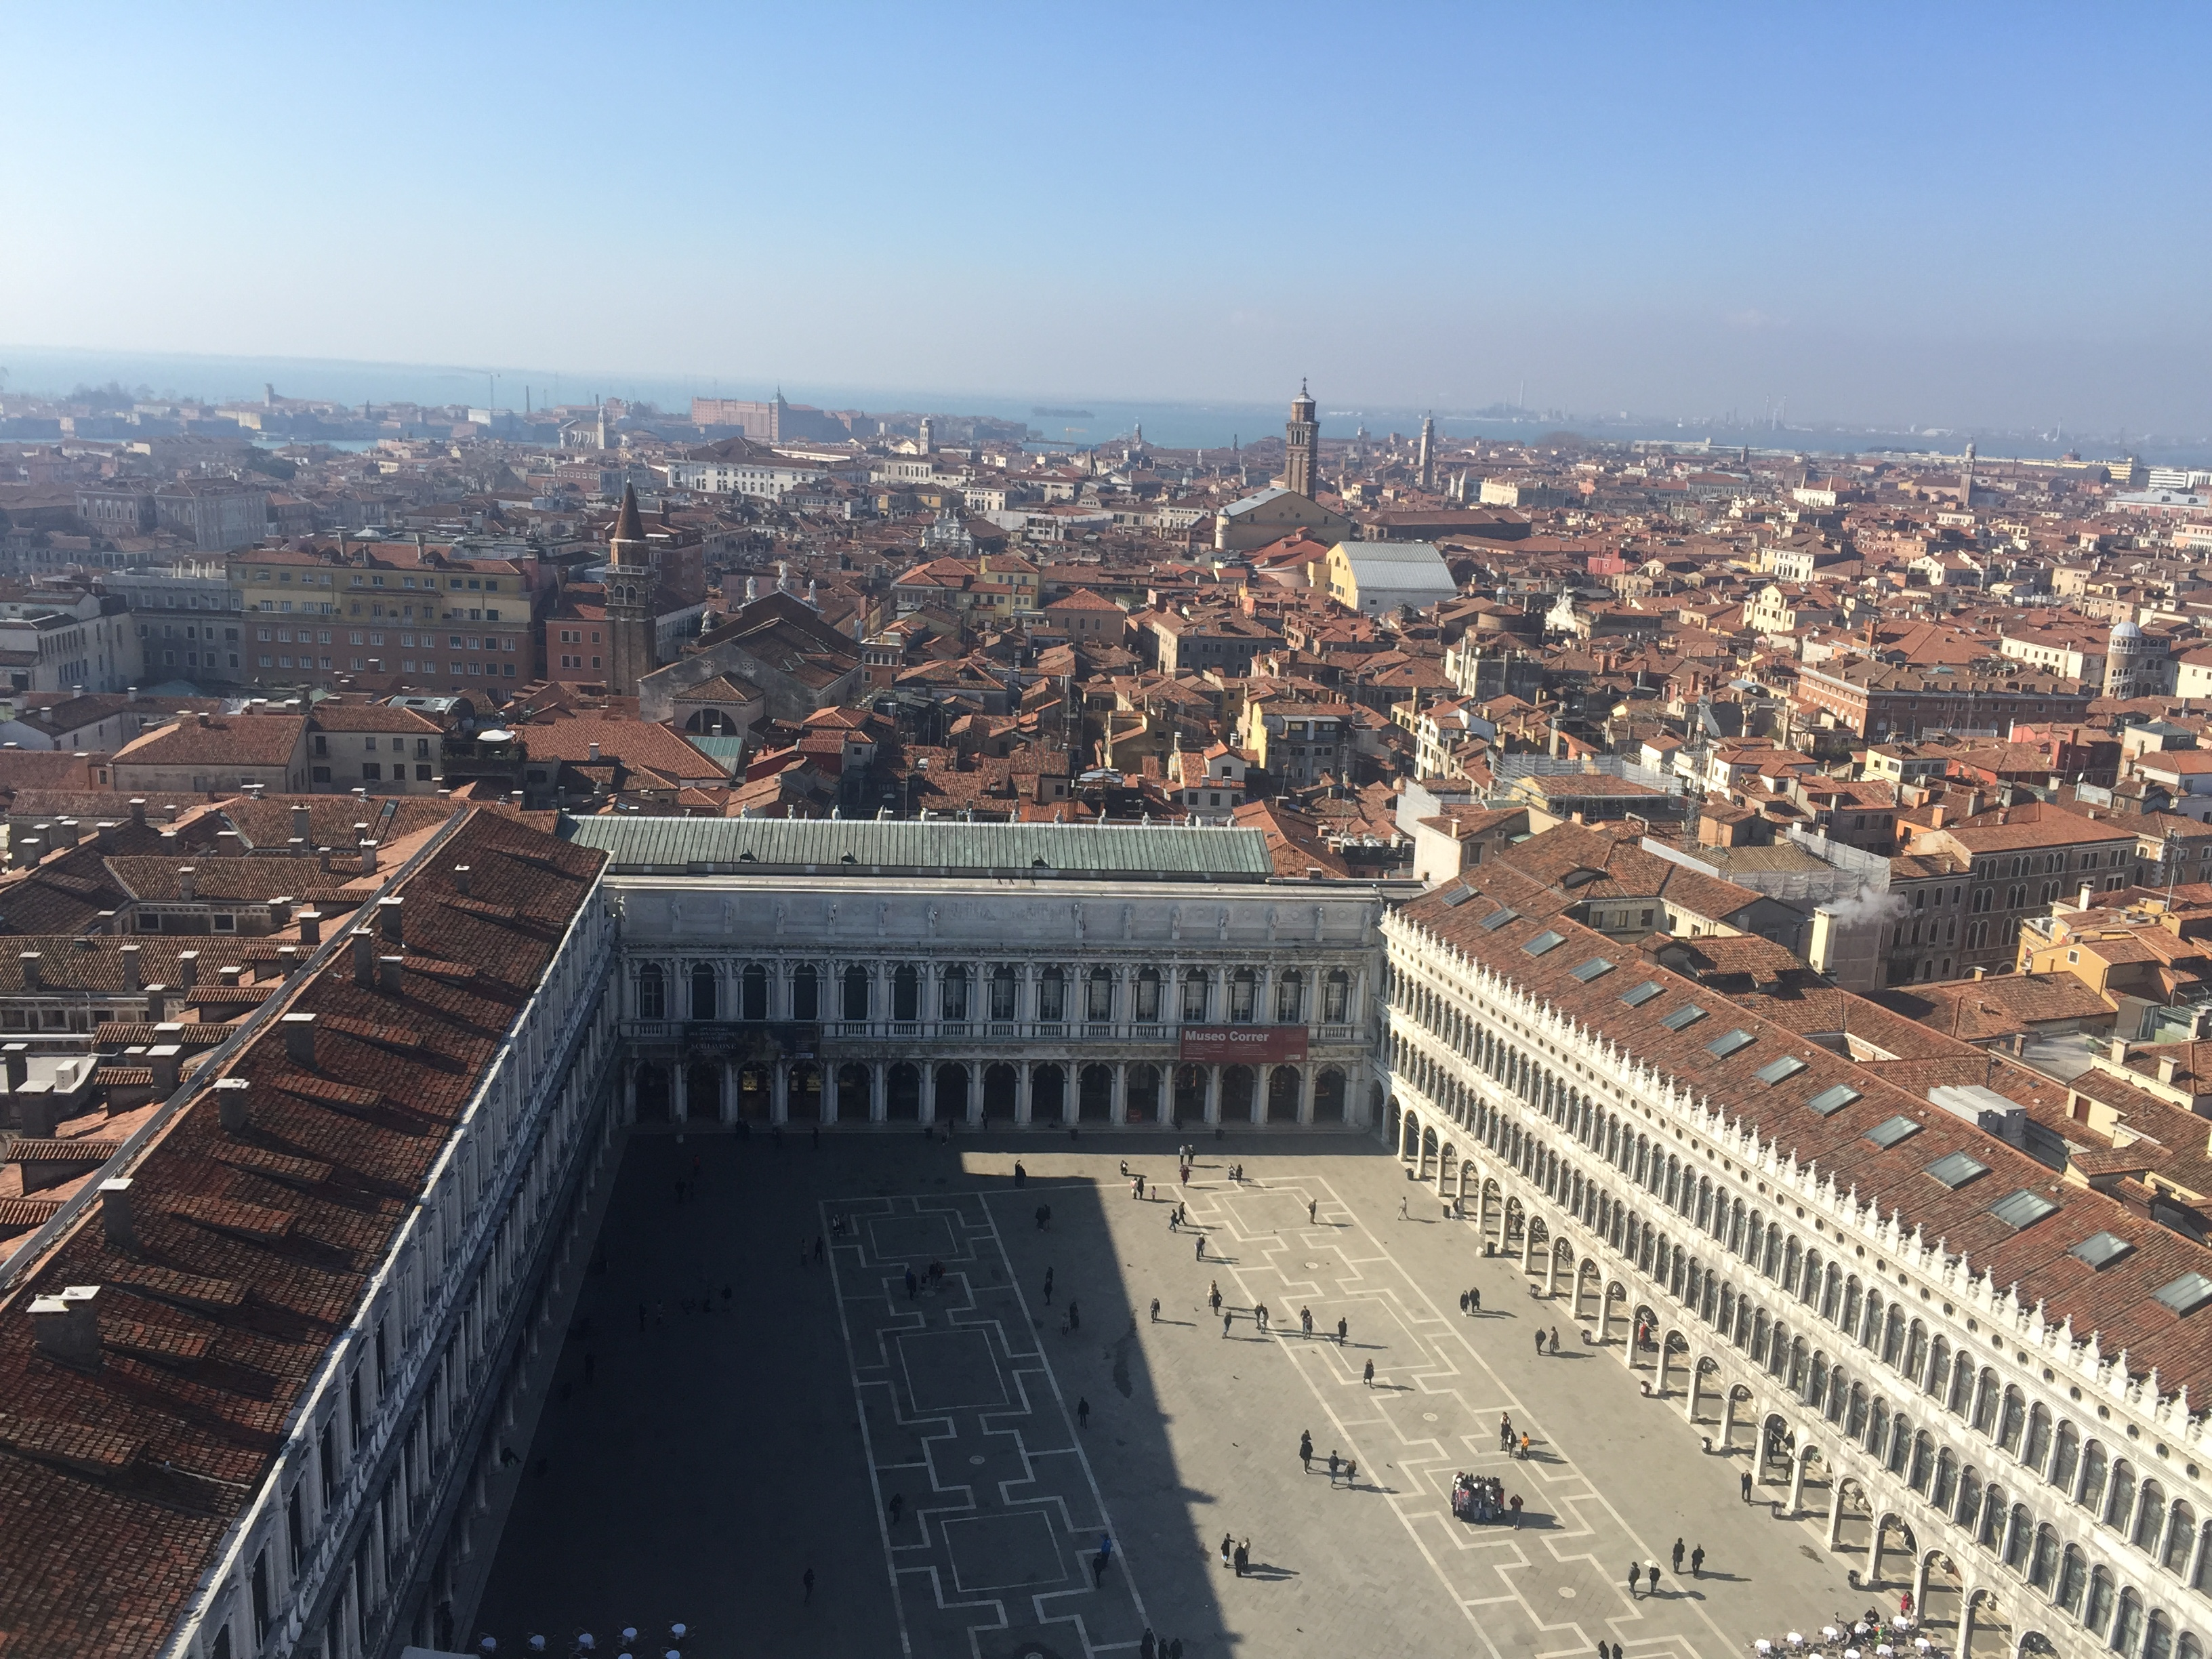 Piazza di San Marco as seen from the top of the Campanile di San Marco